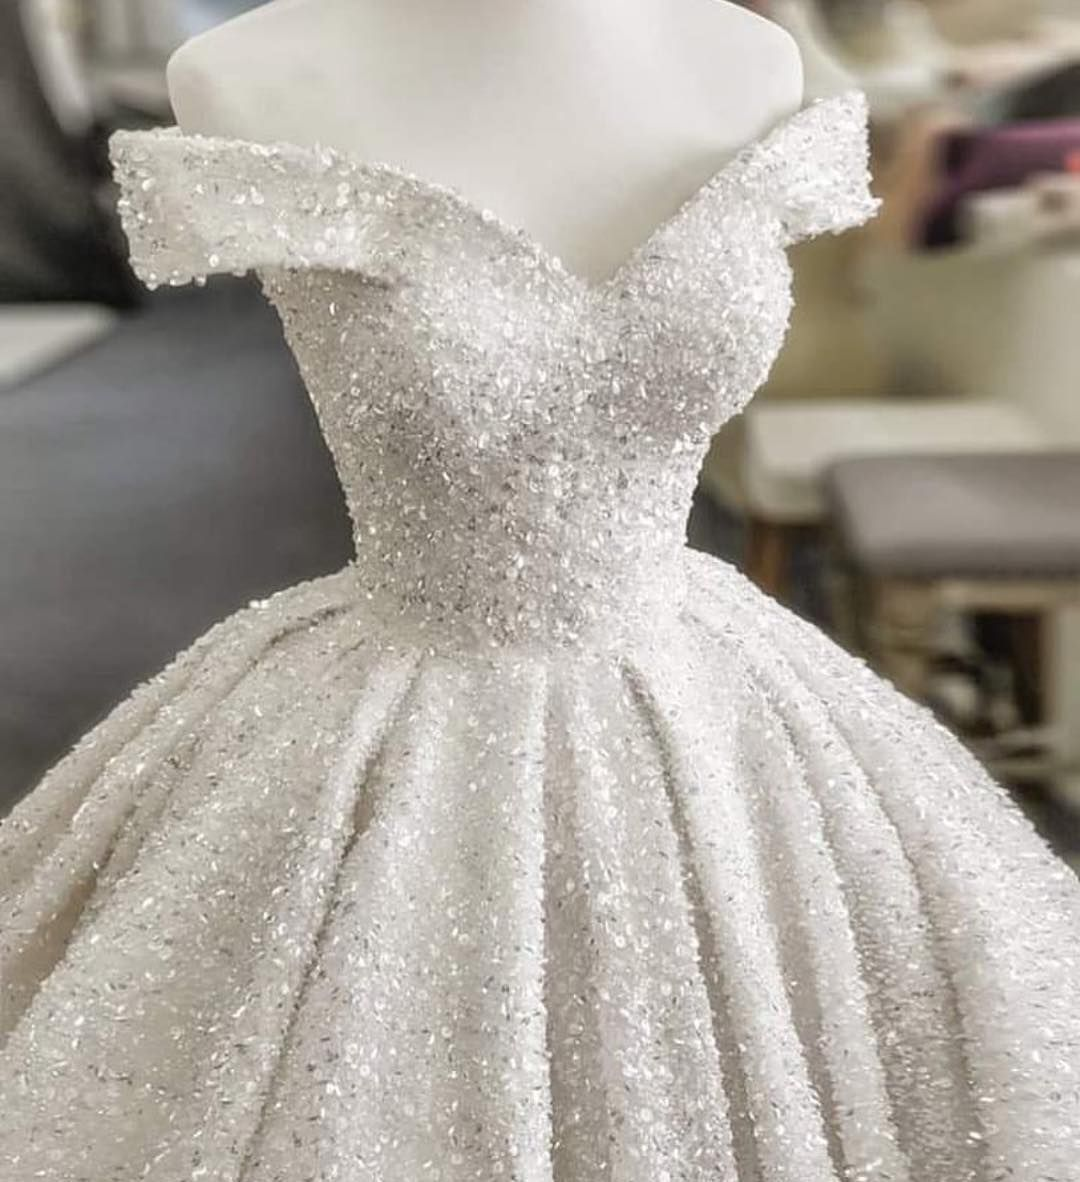 Affordable Custom Wedding Dresses Inspired By Haute Couture Designs Ball Gown Wedding Dress Ball Dresses Wedding Dresses Lace